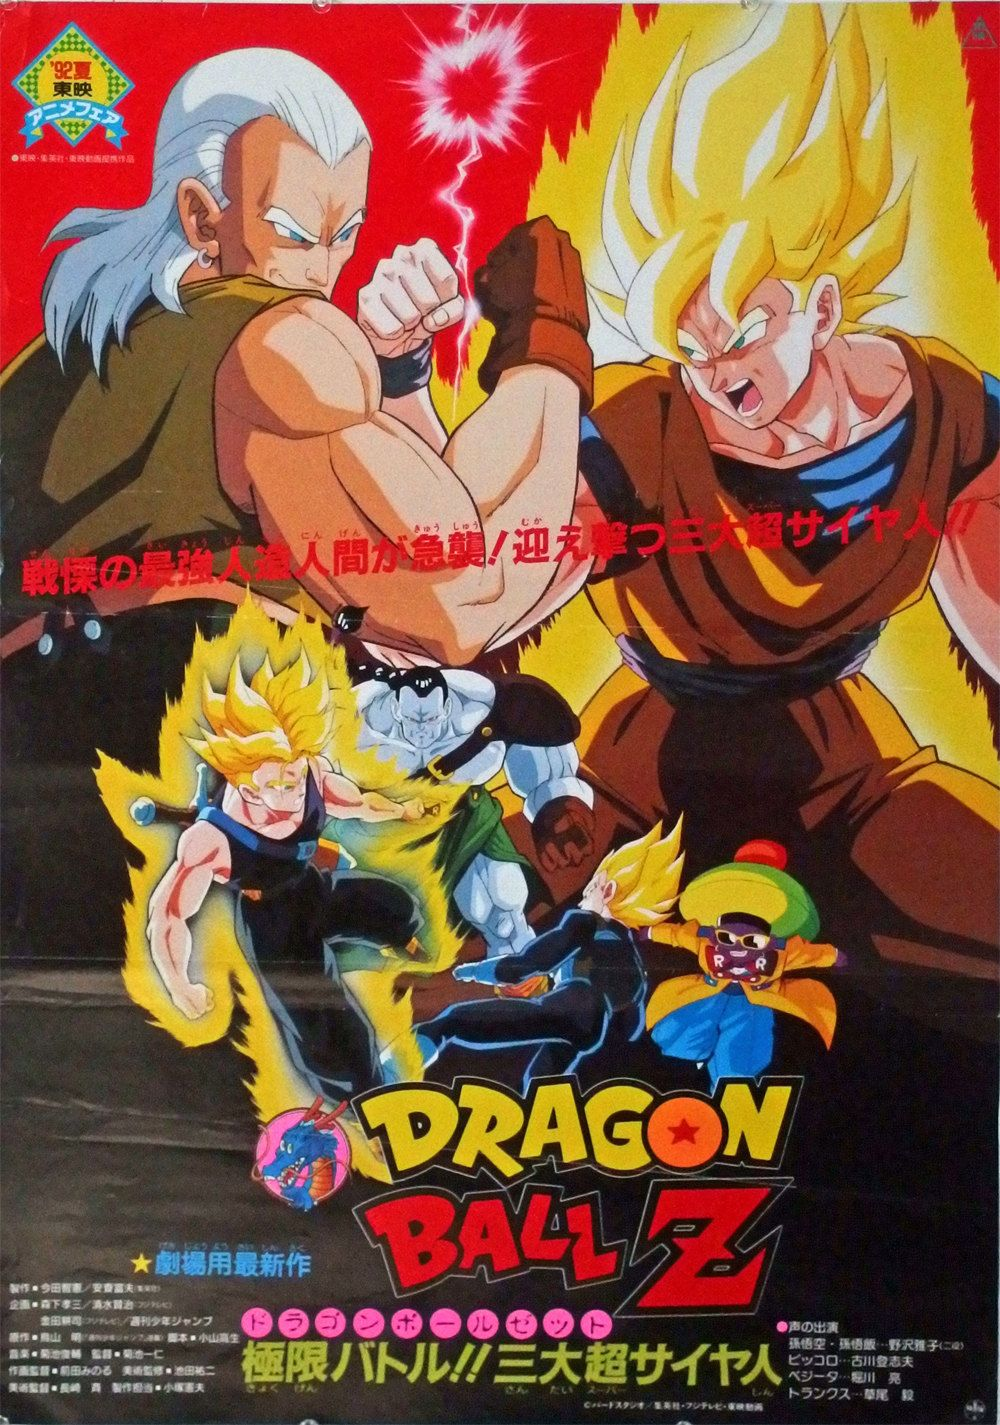 Japanese Anime Poster Dragon Ball Z Quot Super Android 13 Quot Vintage Poster Japanese Movie Poster Original M Dragon Ball Super Goku Dragon Ball Z Anime